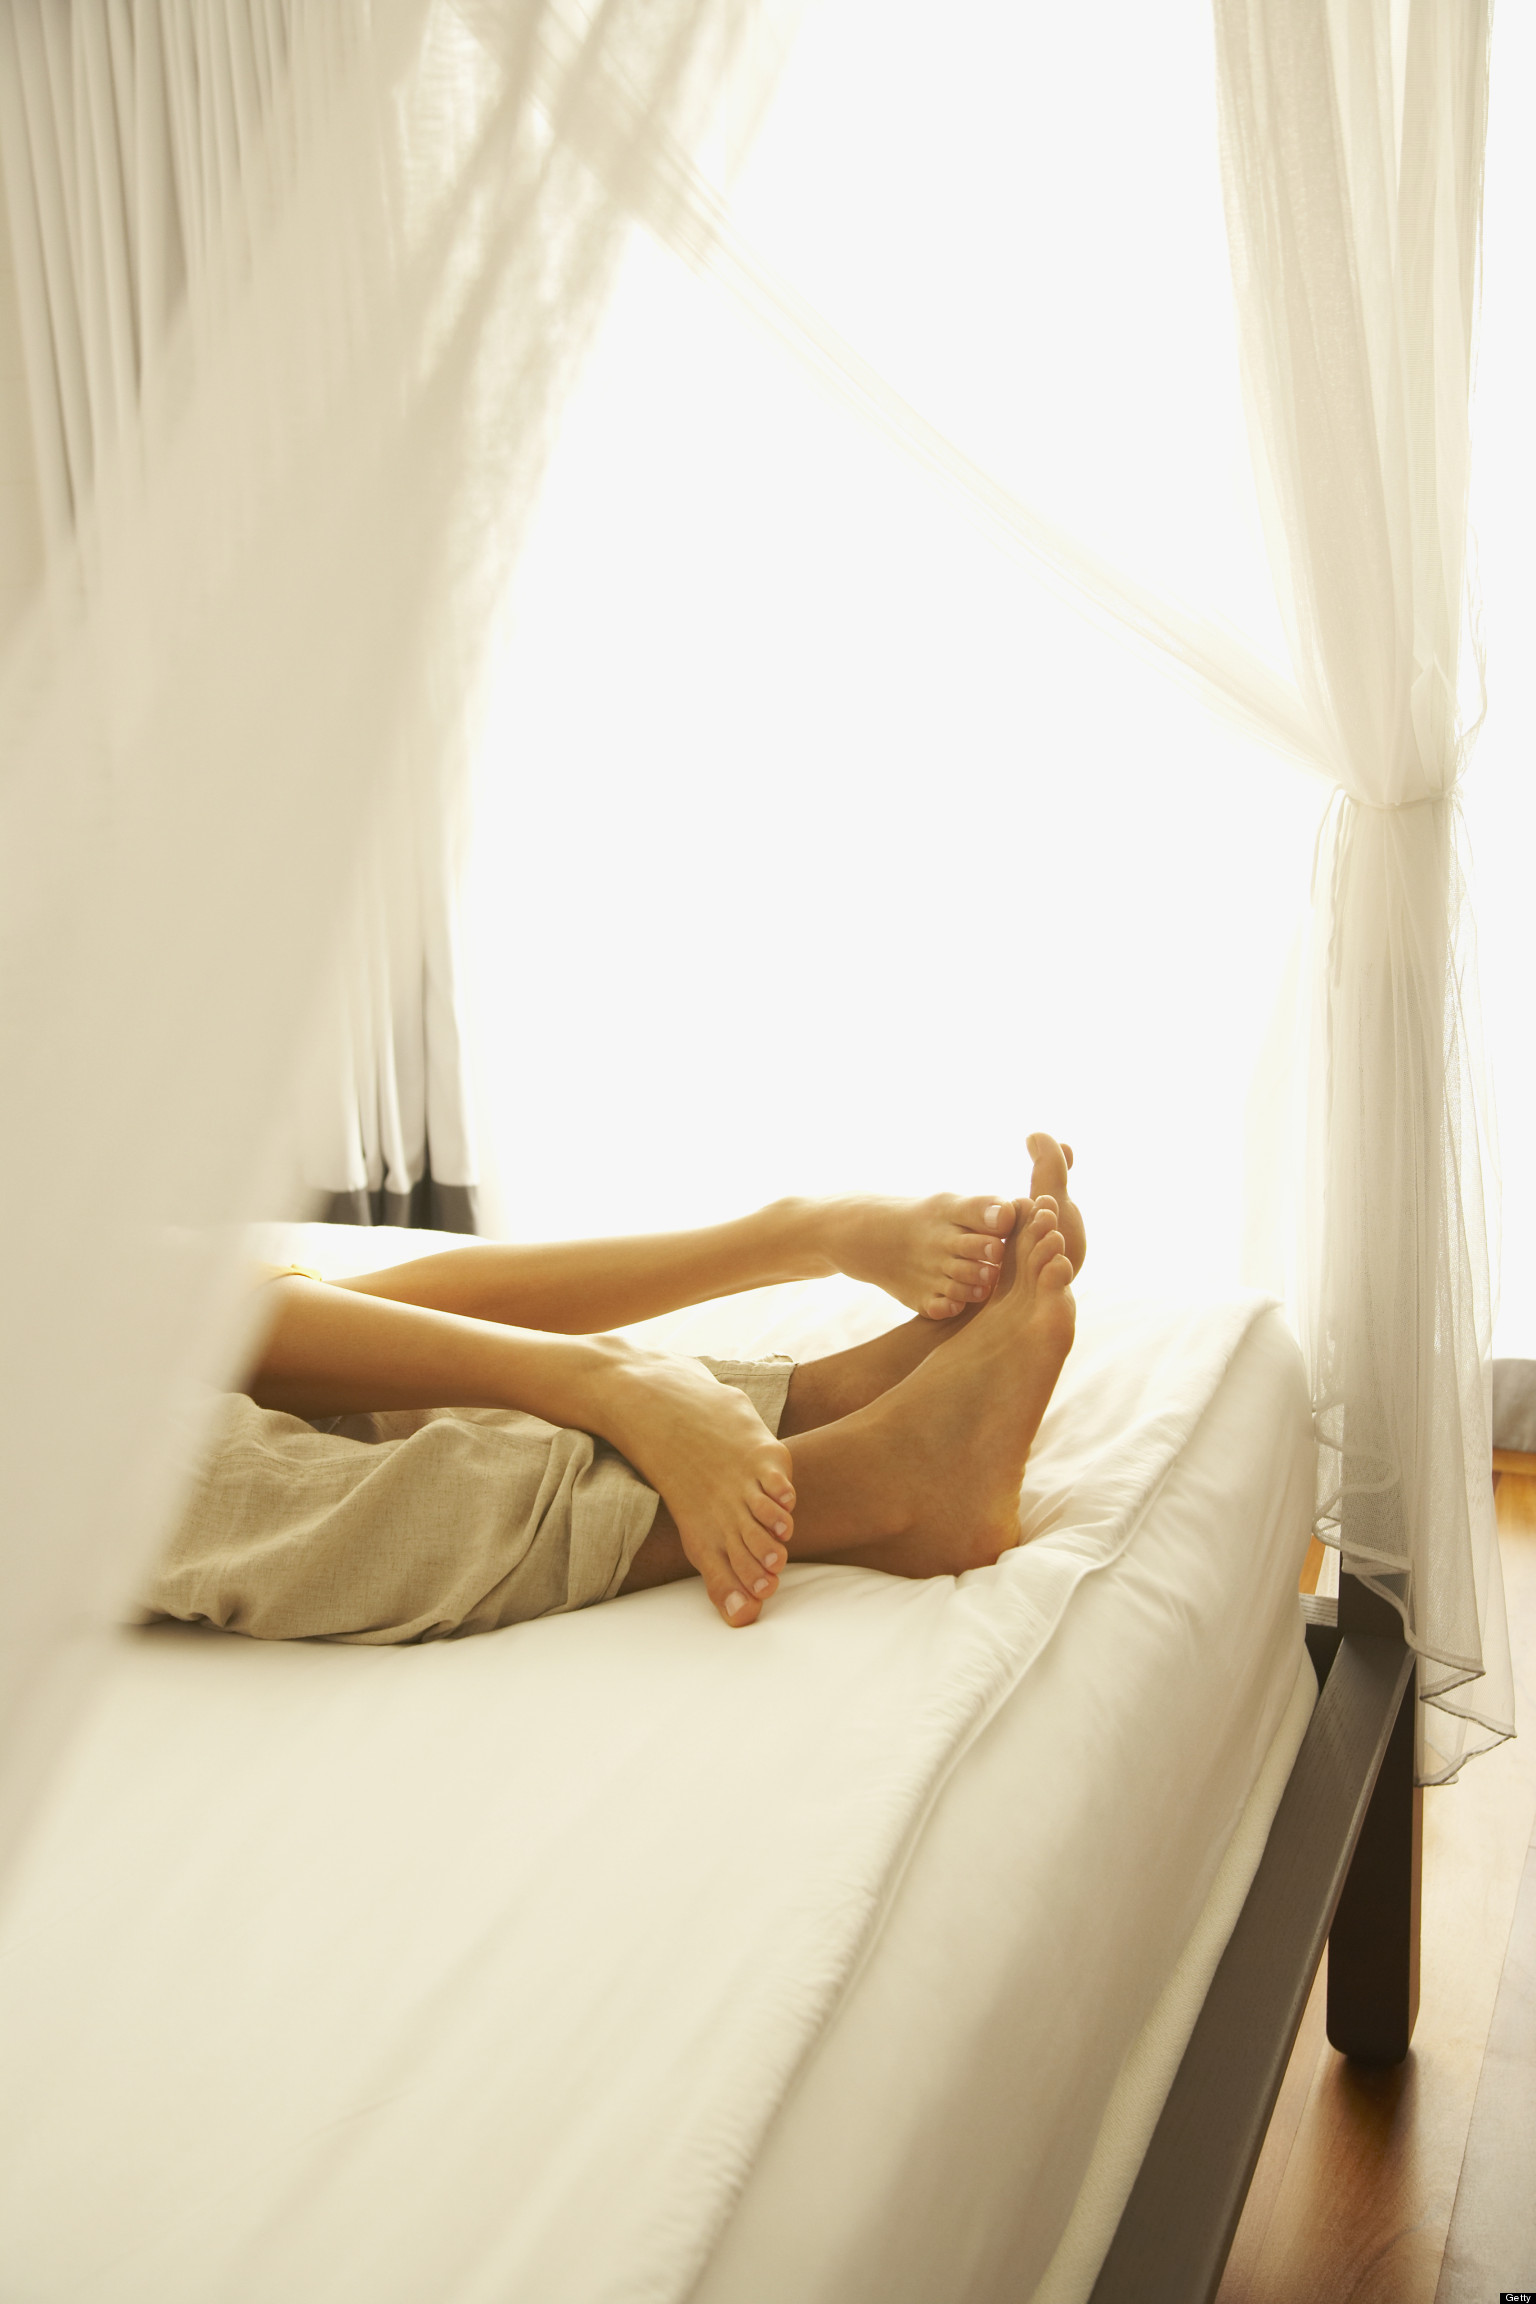 Sexting A Reason To Split? New Survey Looks At Relationship Scenarios    HuffPost